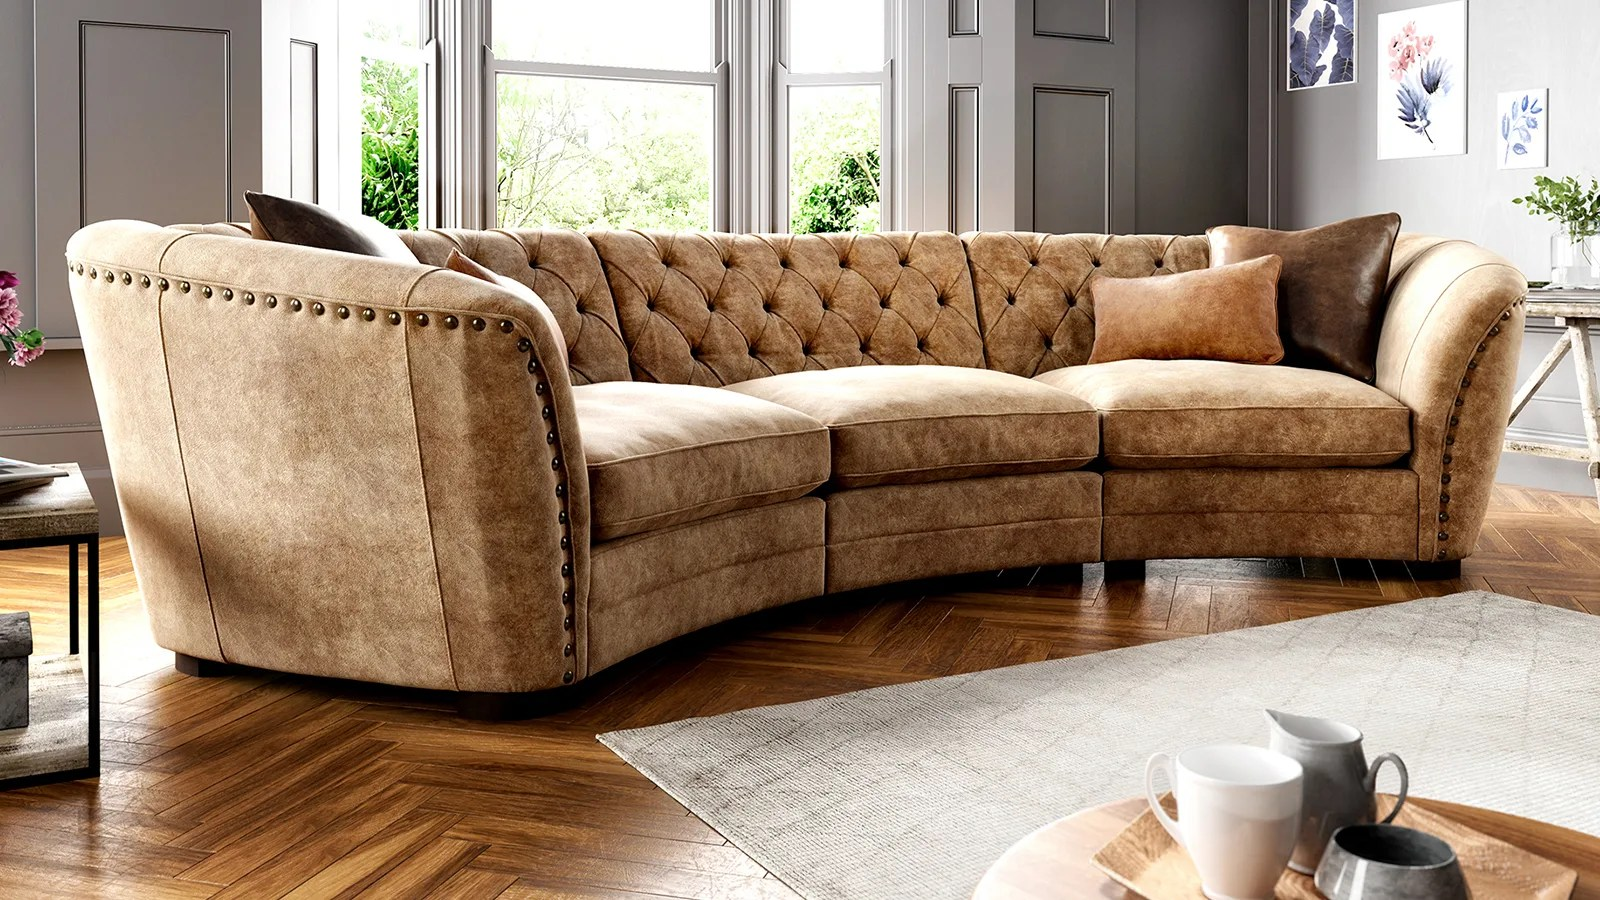 Sofology Quebec Leather Sofas Sofology